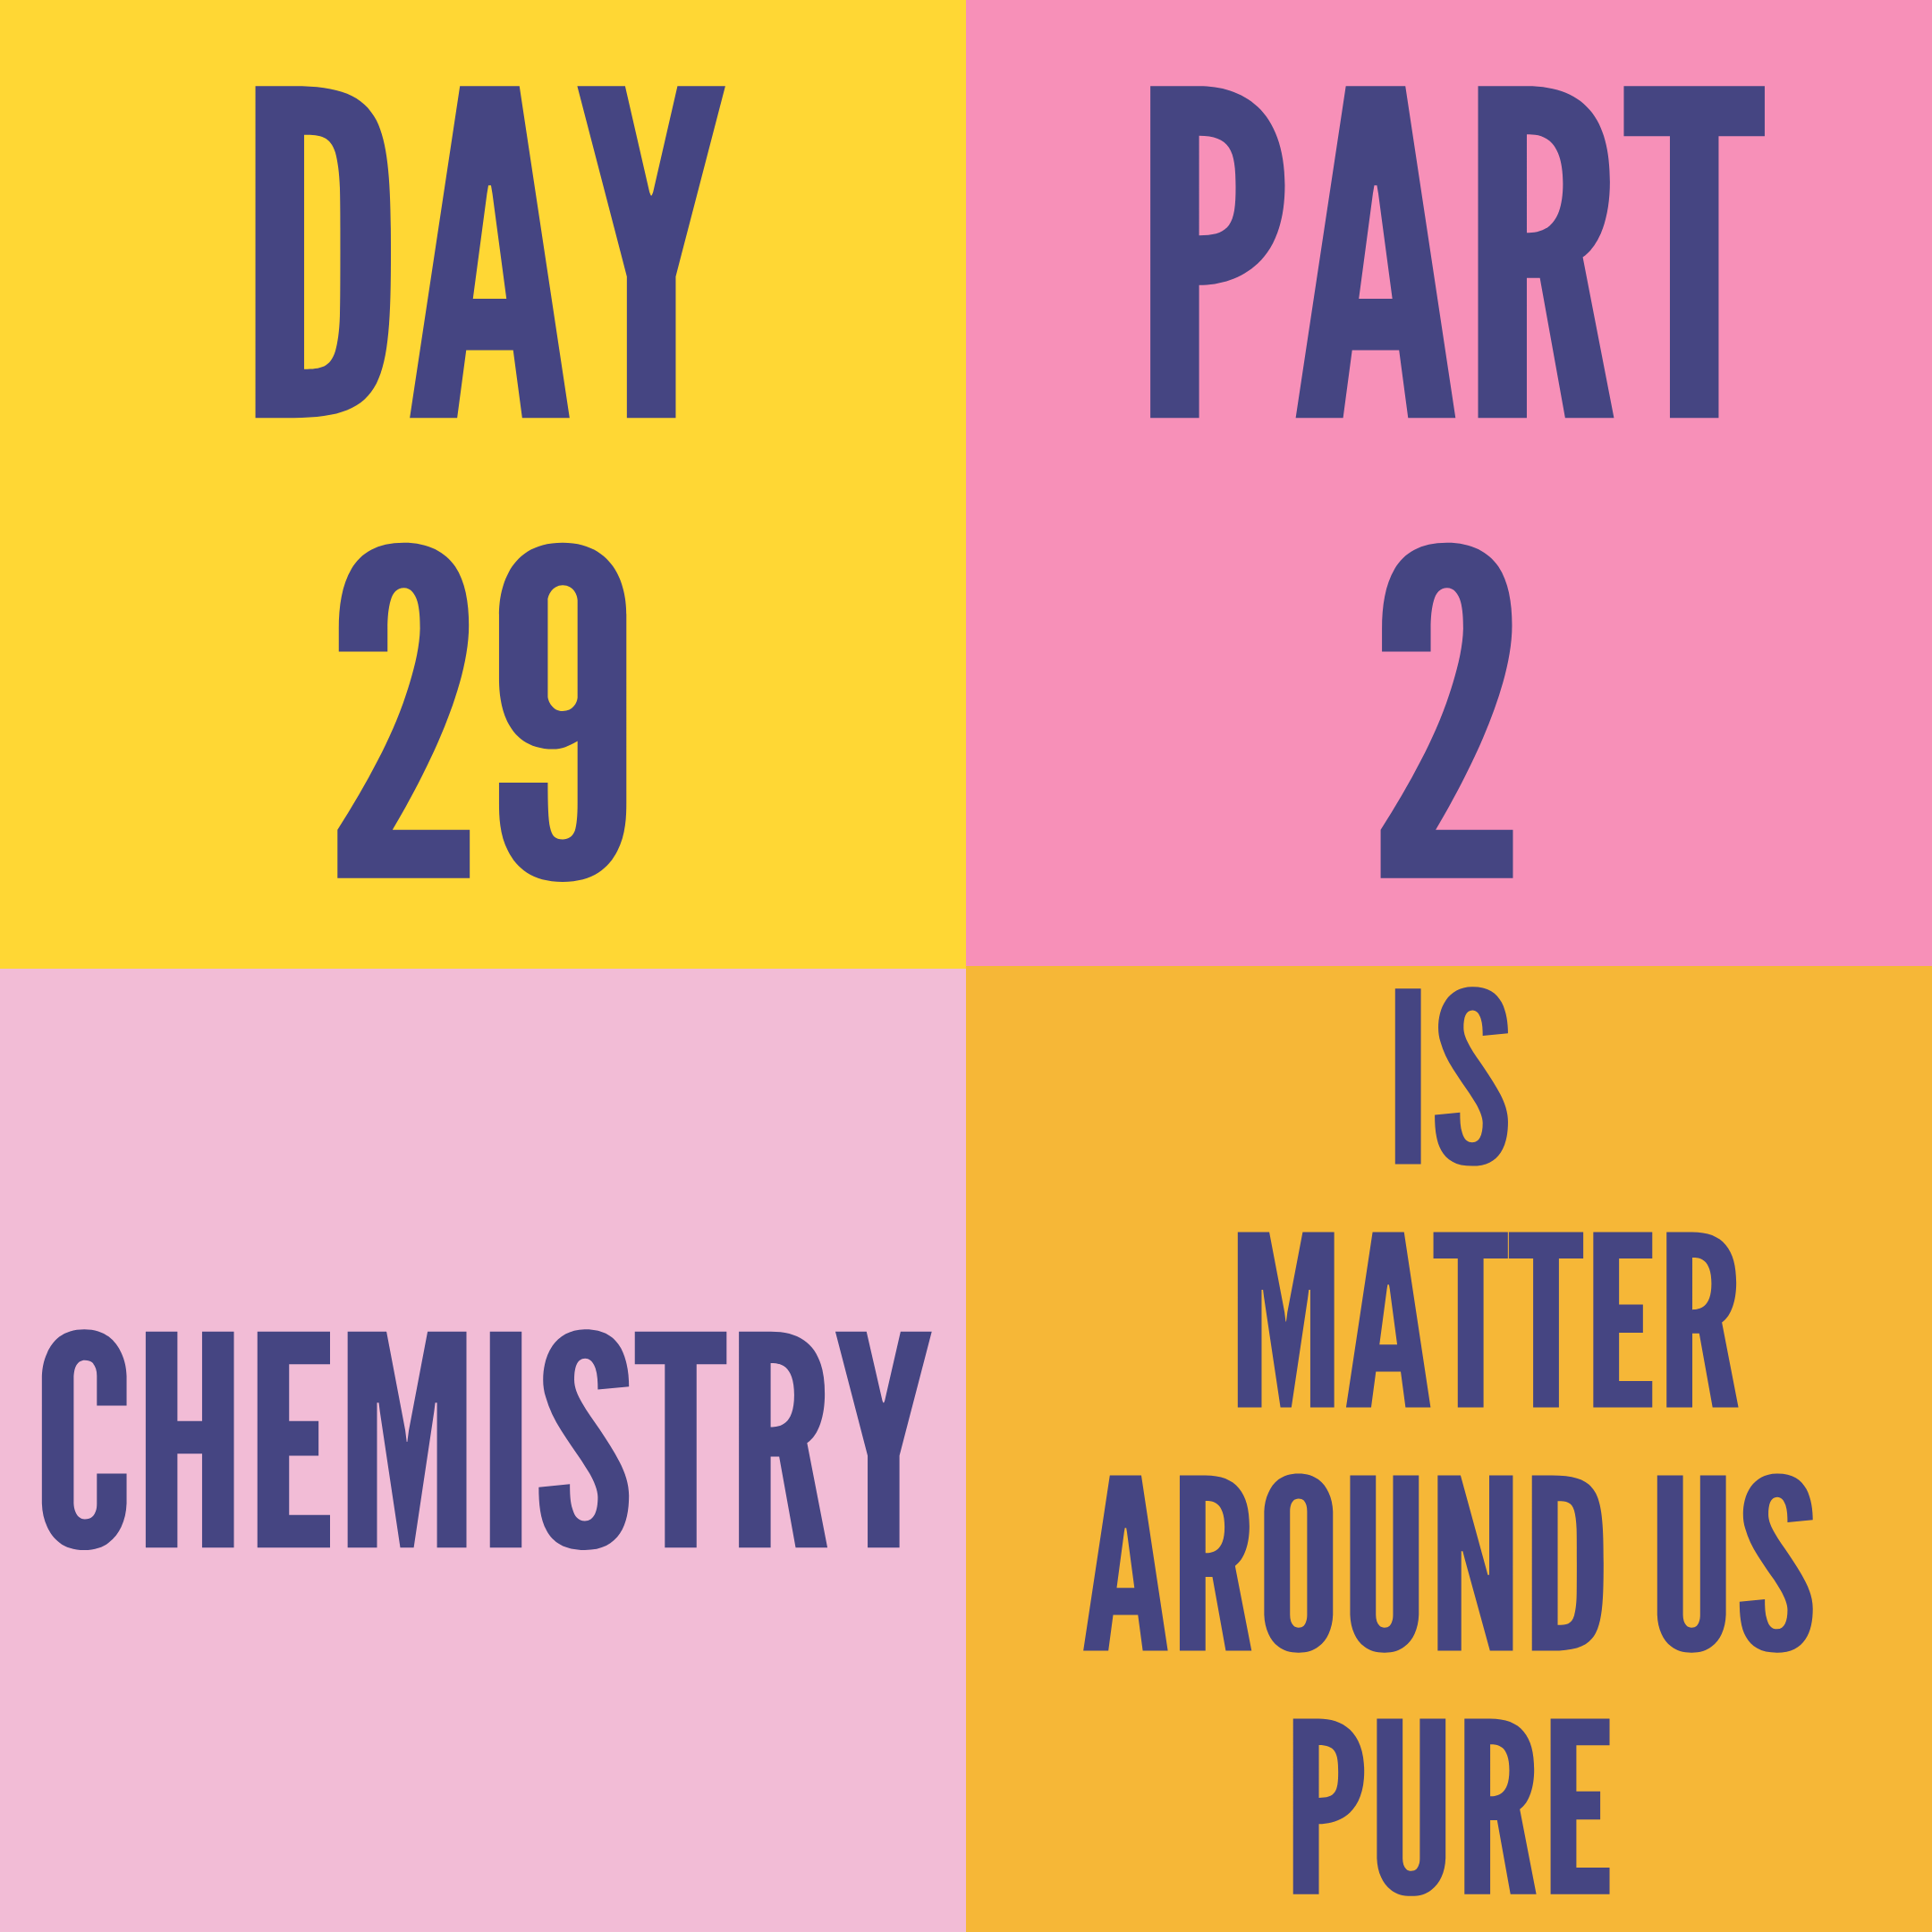 DAY-29 PART-2 IS MATTER AROUND US PURE